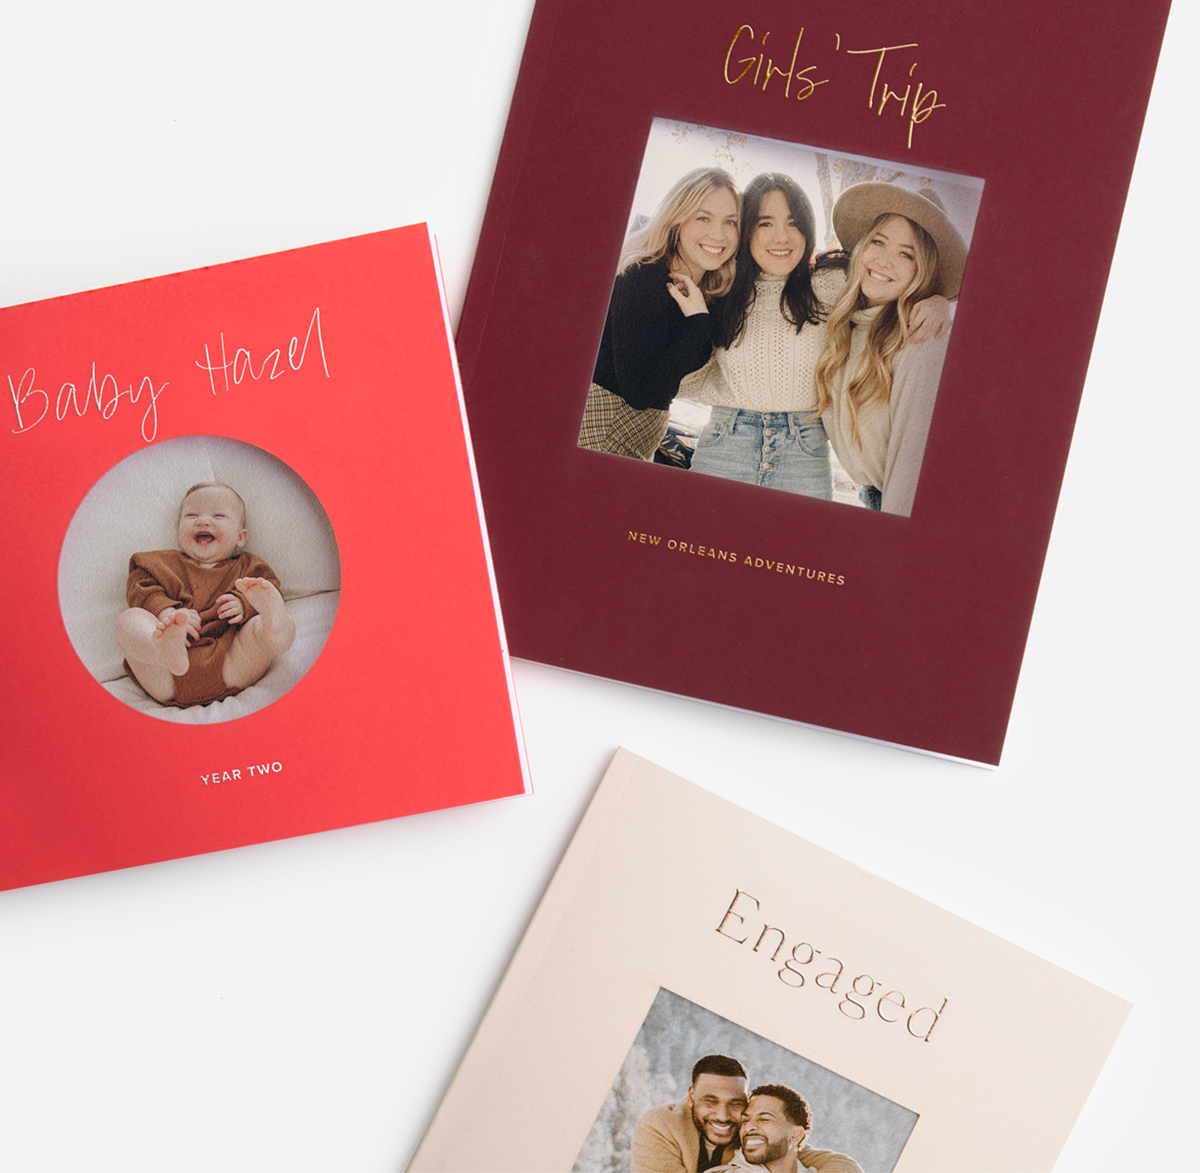 Three Color Series Photo Books featuring different cover hues and die-cut shapes